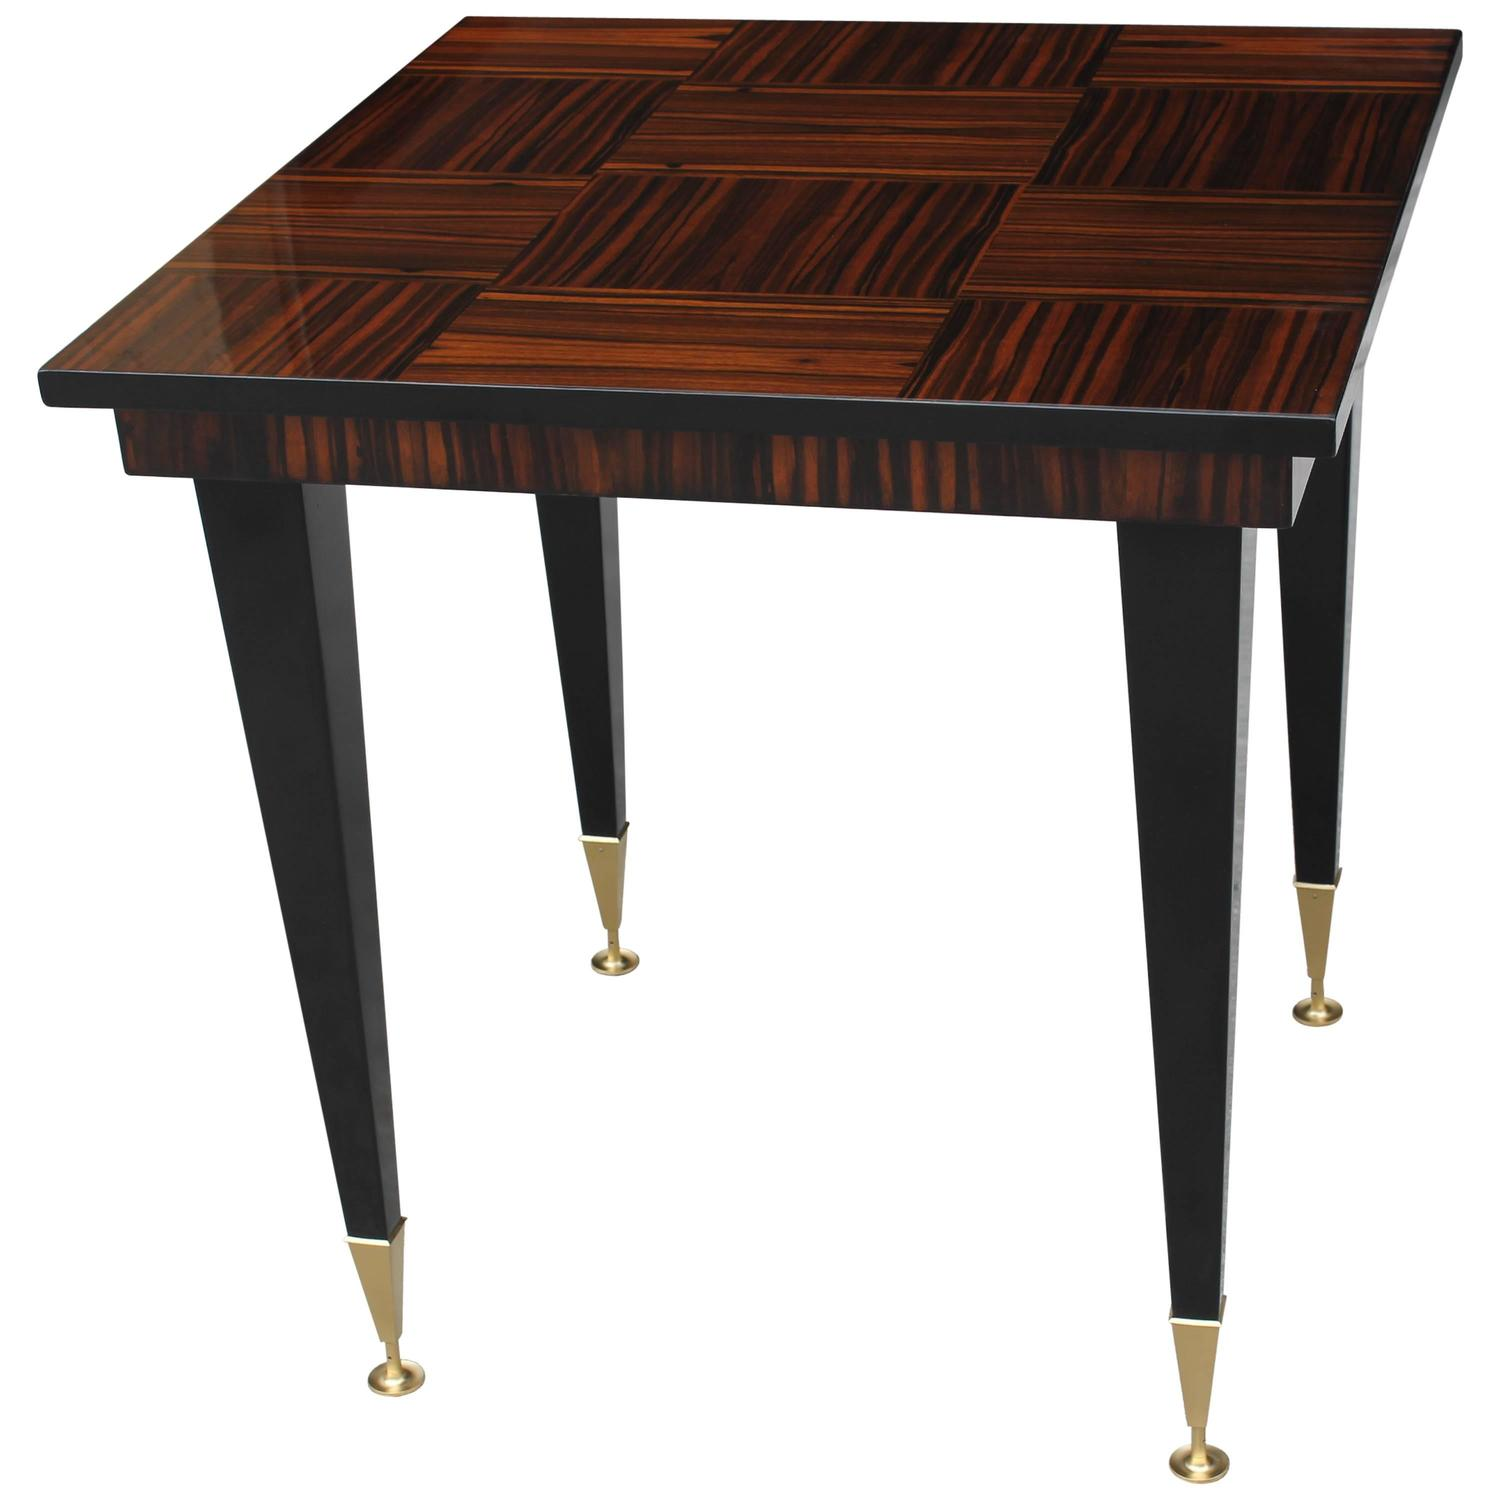 french art deco exotic macassar ebony square game table circa 1940s for sale at 1stdibs. Black Bedroom Furniture Sets. Home Design Ideas